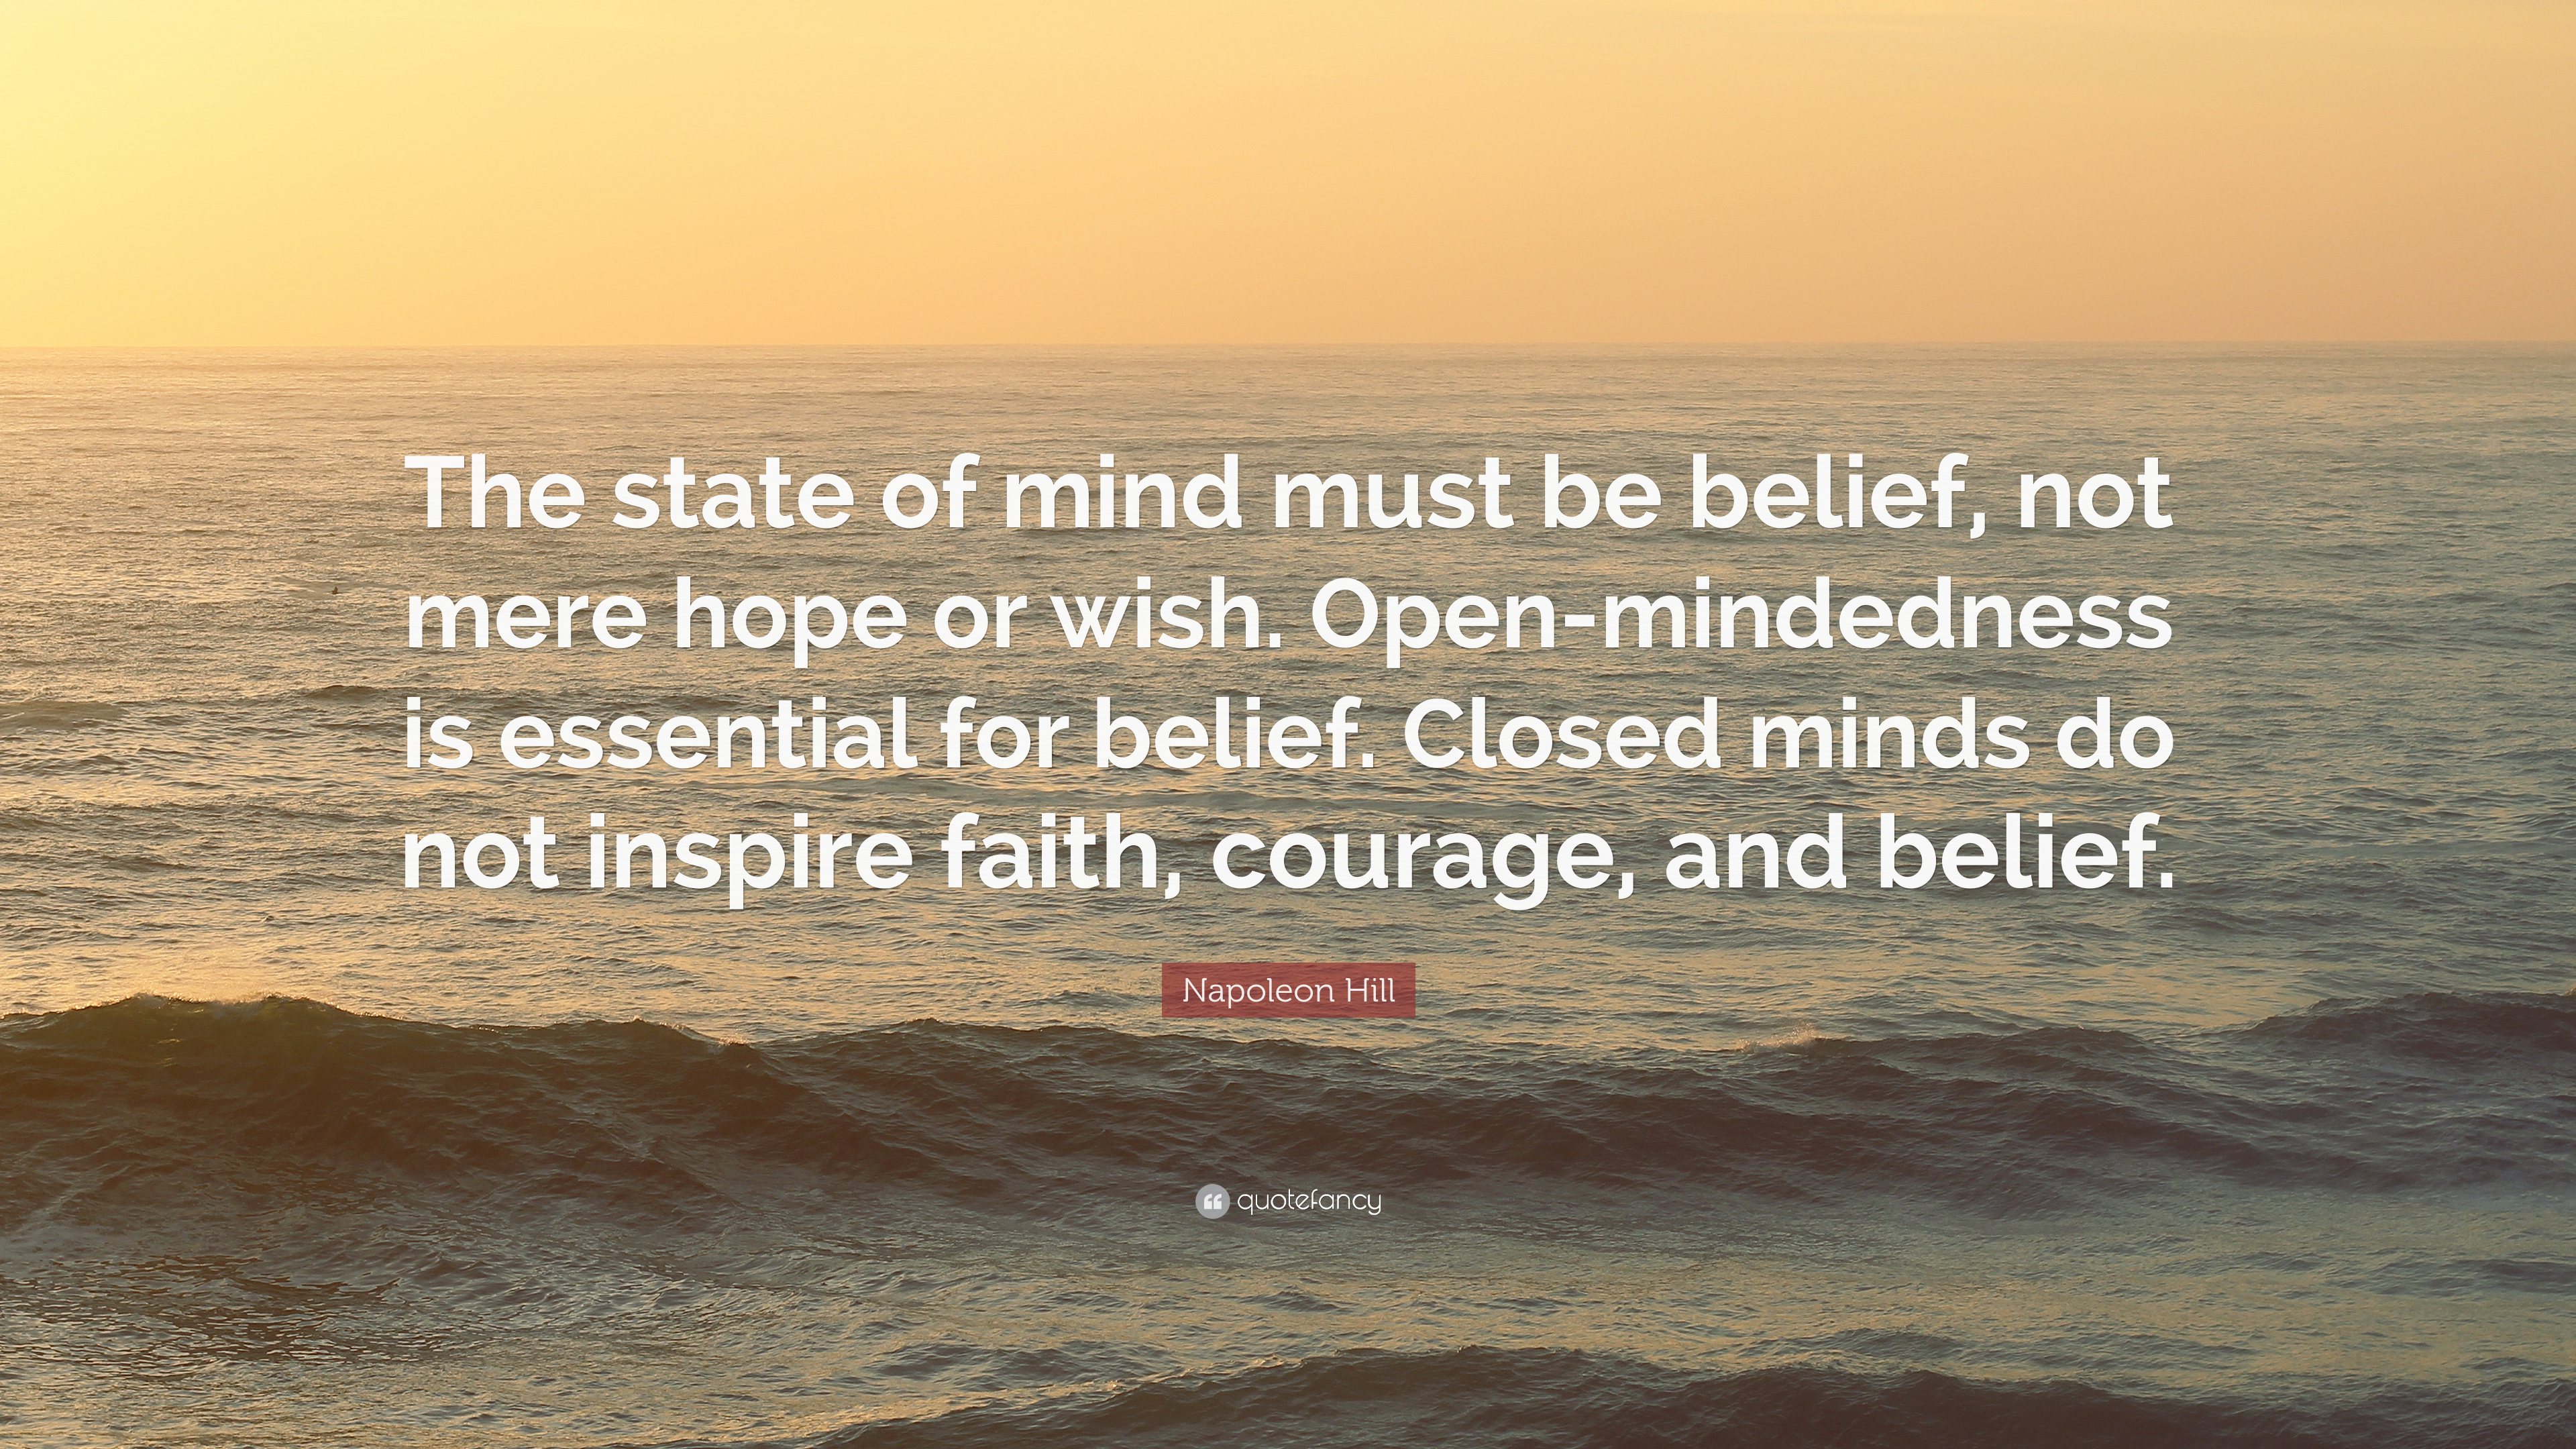 napoleon hill quote the state of mind must be belief not mere hope